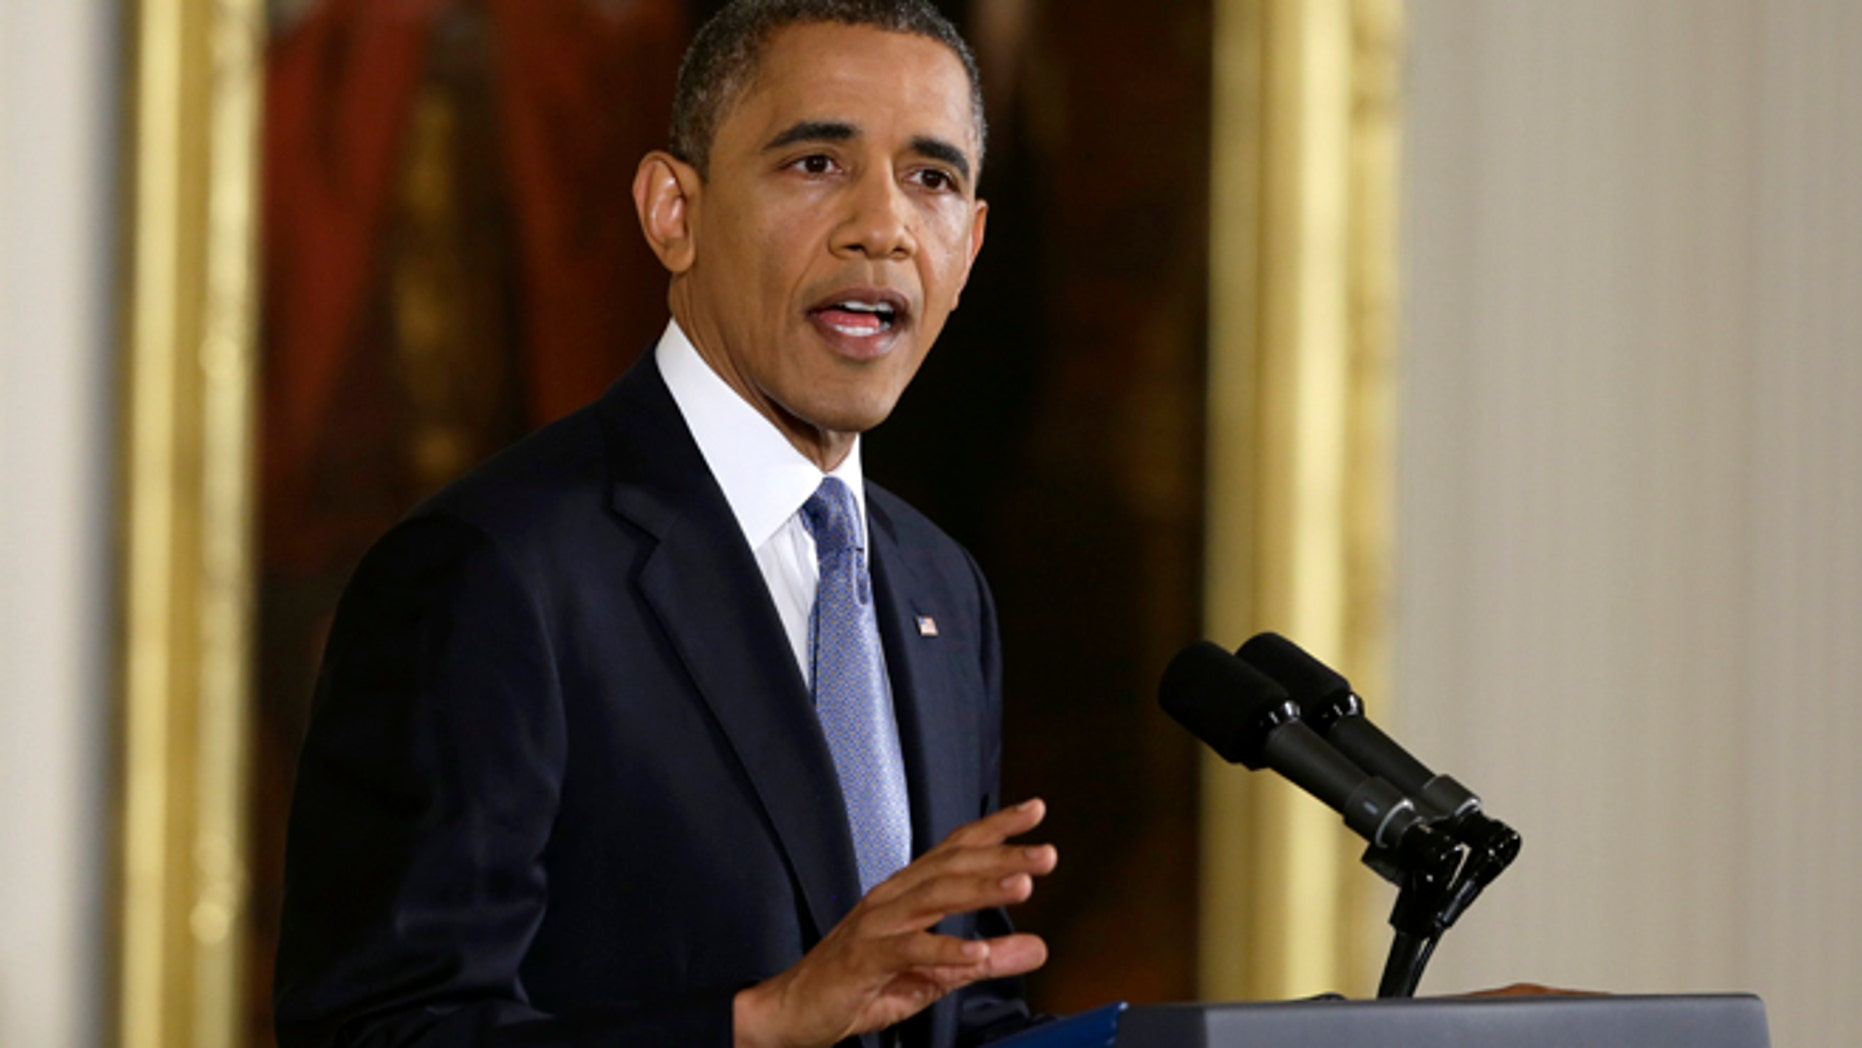 Nov. 14, 2012: President Barack Obama makes an opening statement during his news conference.